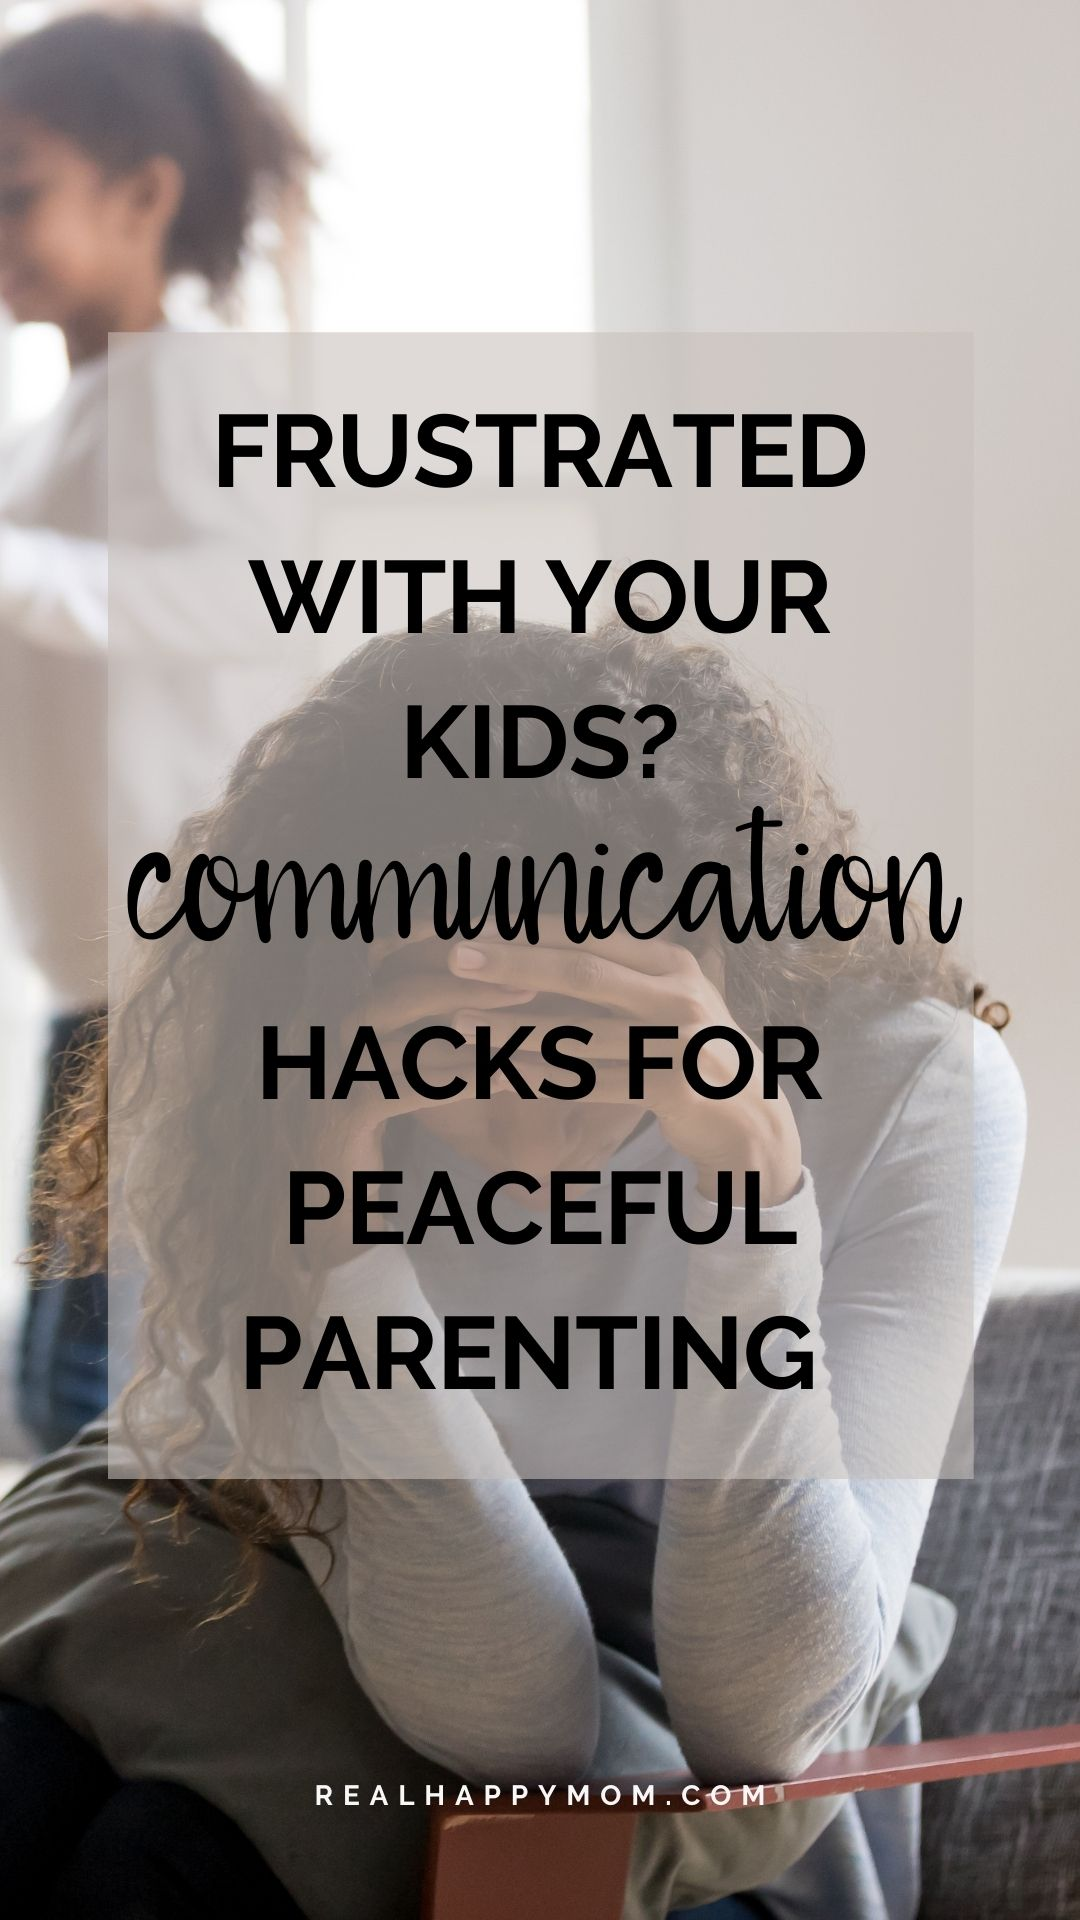 Frustrated with Your Kids? 3 Communication Hacks for Peaceful Parenting